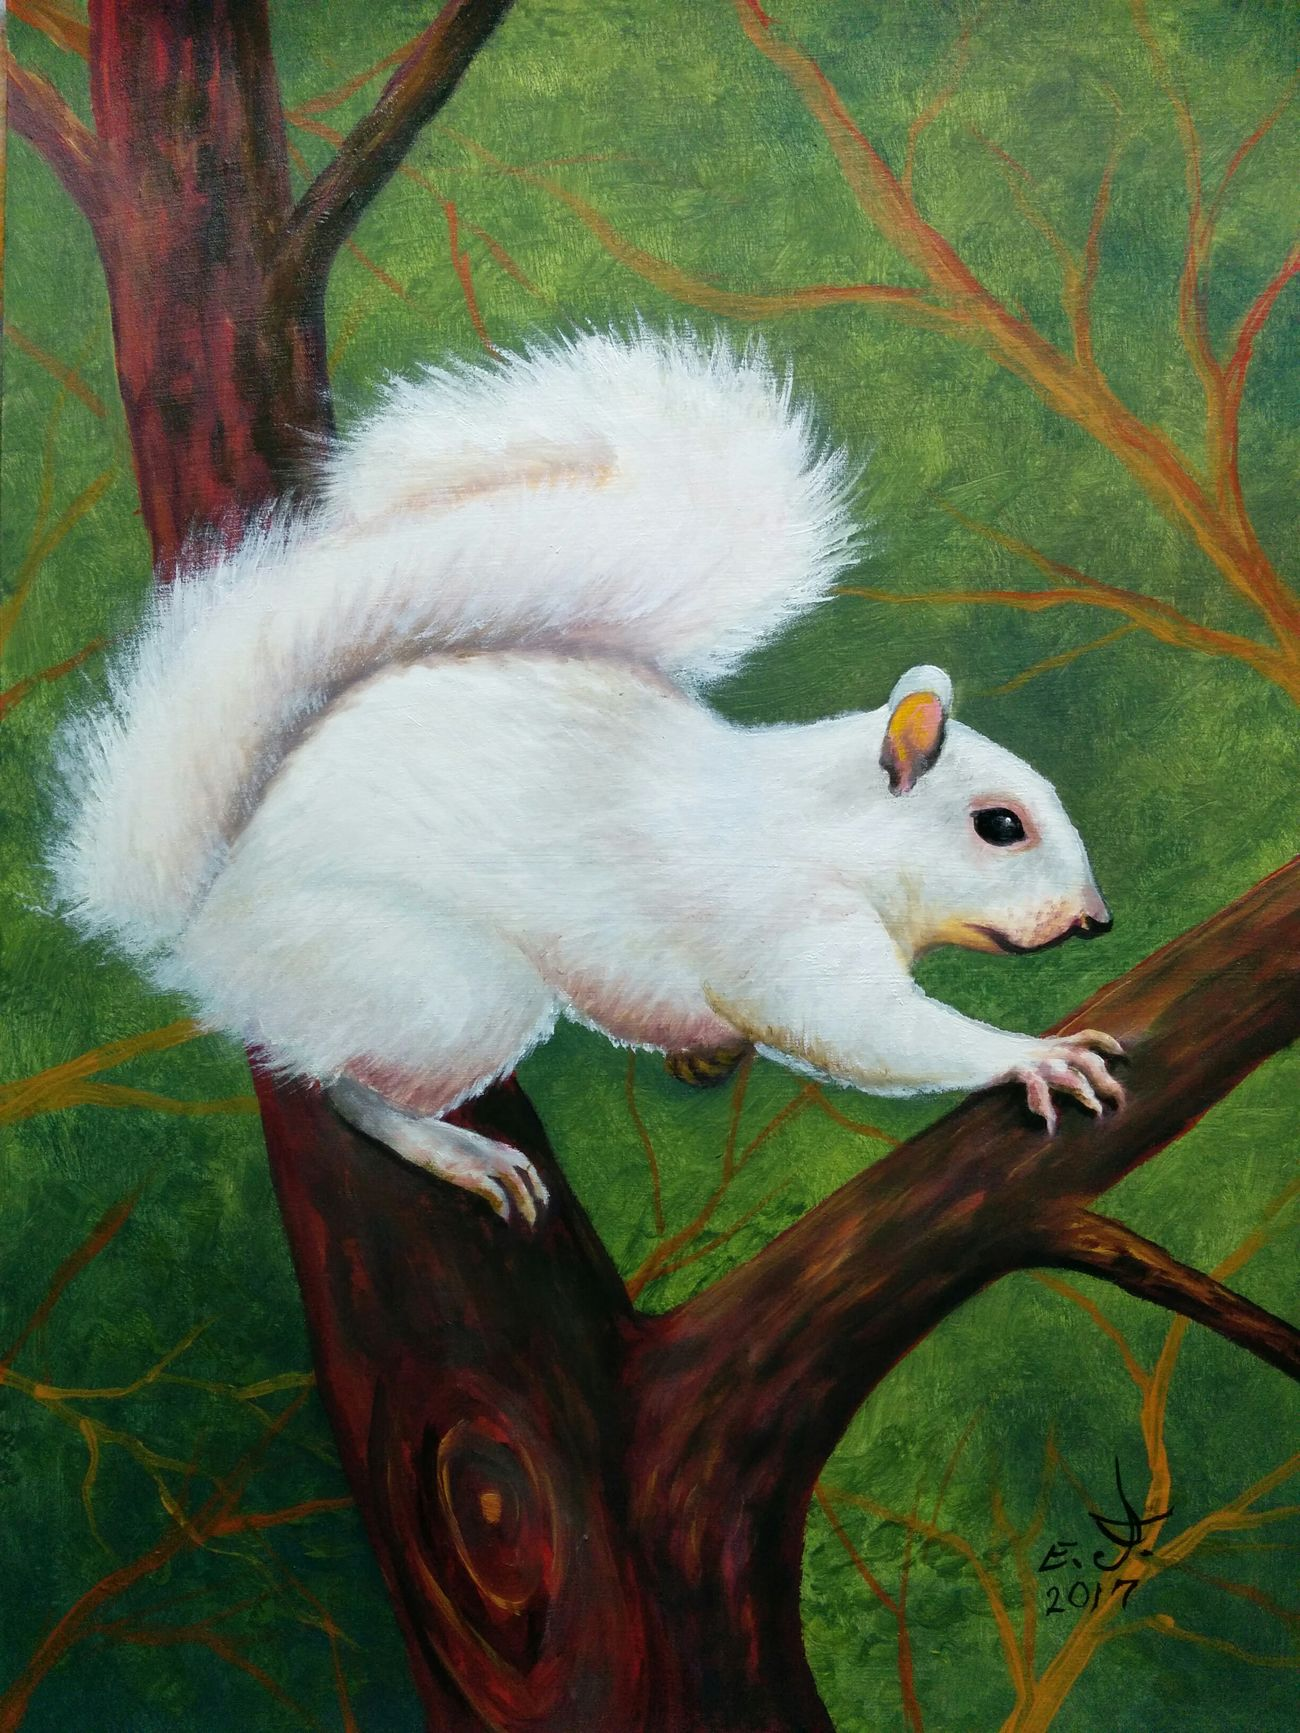 "Eastern gray Squirrel a very cute friendly animal ,oil on canvas 16""_20"" . Nature Fredom Portrait My Animal Collection Original Art My Art Collection Animals In The Wild Scenics Beauty In Nature One Animal ArtWork Art, Drawing, Creativity Oil Painting Fine Art Drawing Art My Portrait Collection Beauty My Best Friends ❤ Love♥ Friendship. ♡   Wildlife & Nature with my best friends"